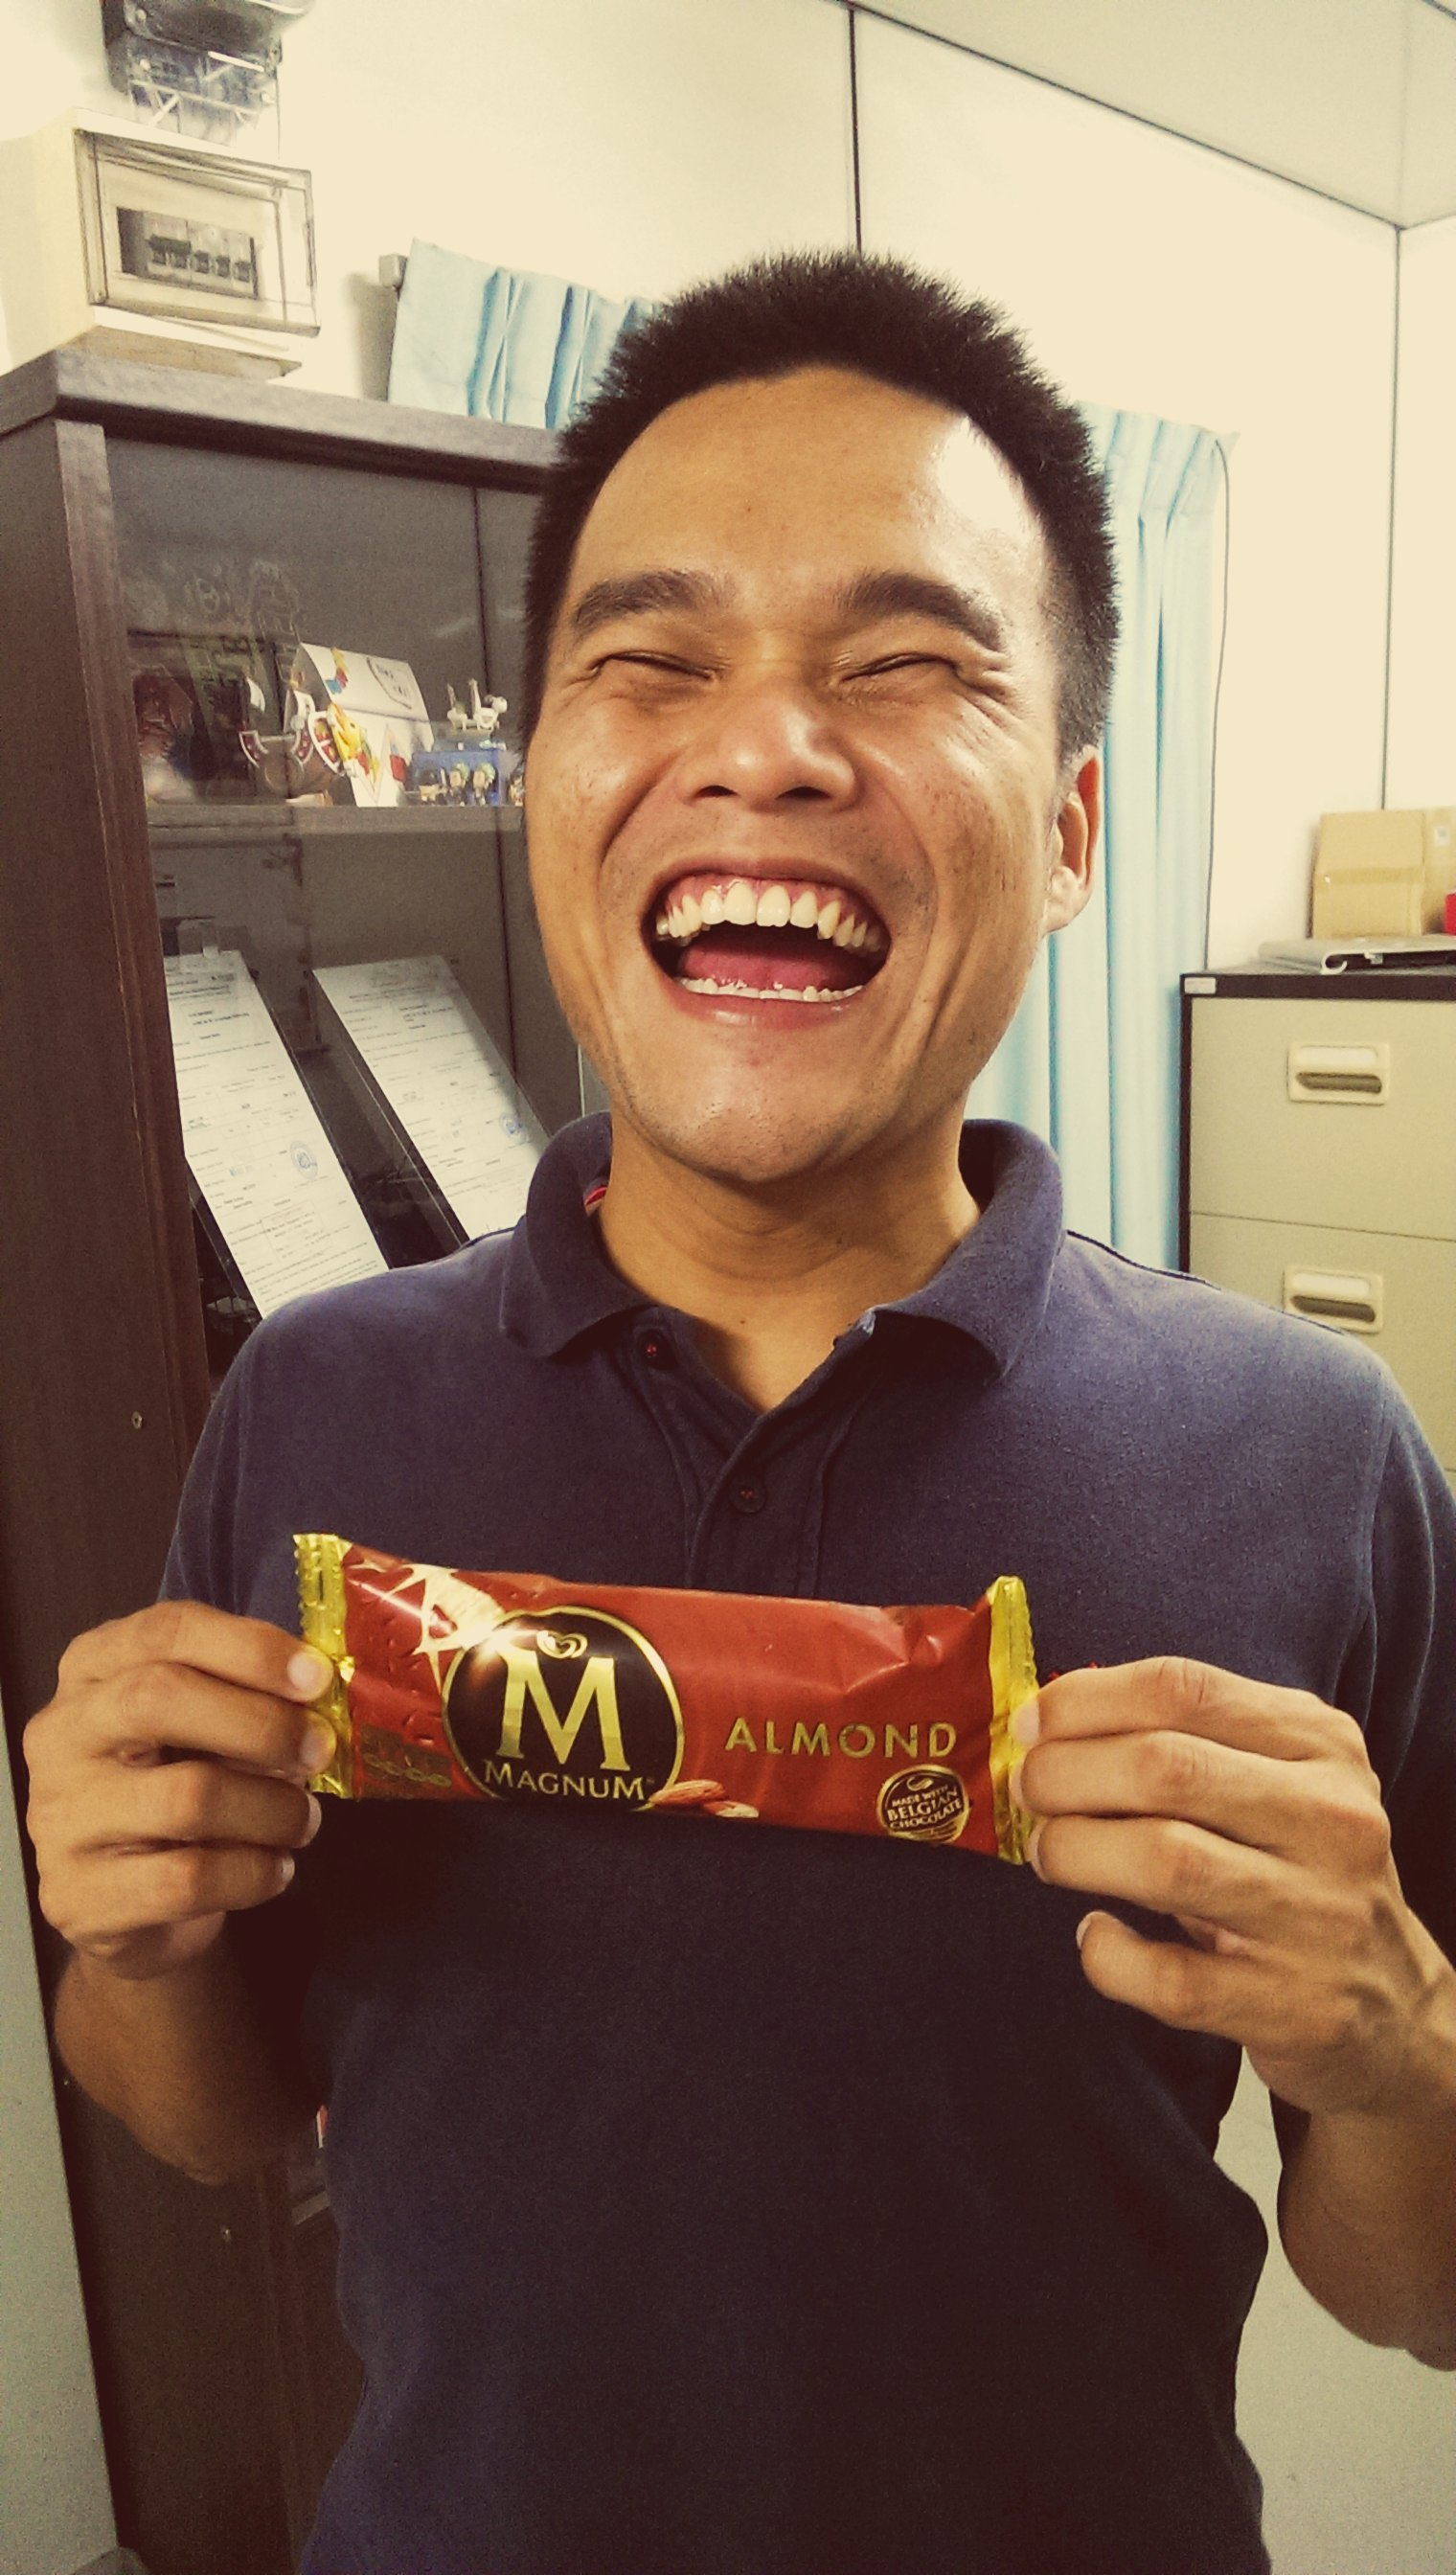 So happy because I've successfully apply my Financial Planning Adviser license at StandardFA and my wife bought me a Magnum ice cream for the celebration.